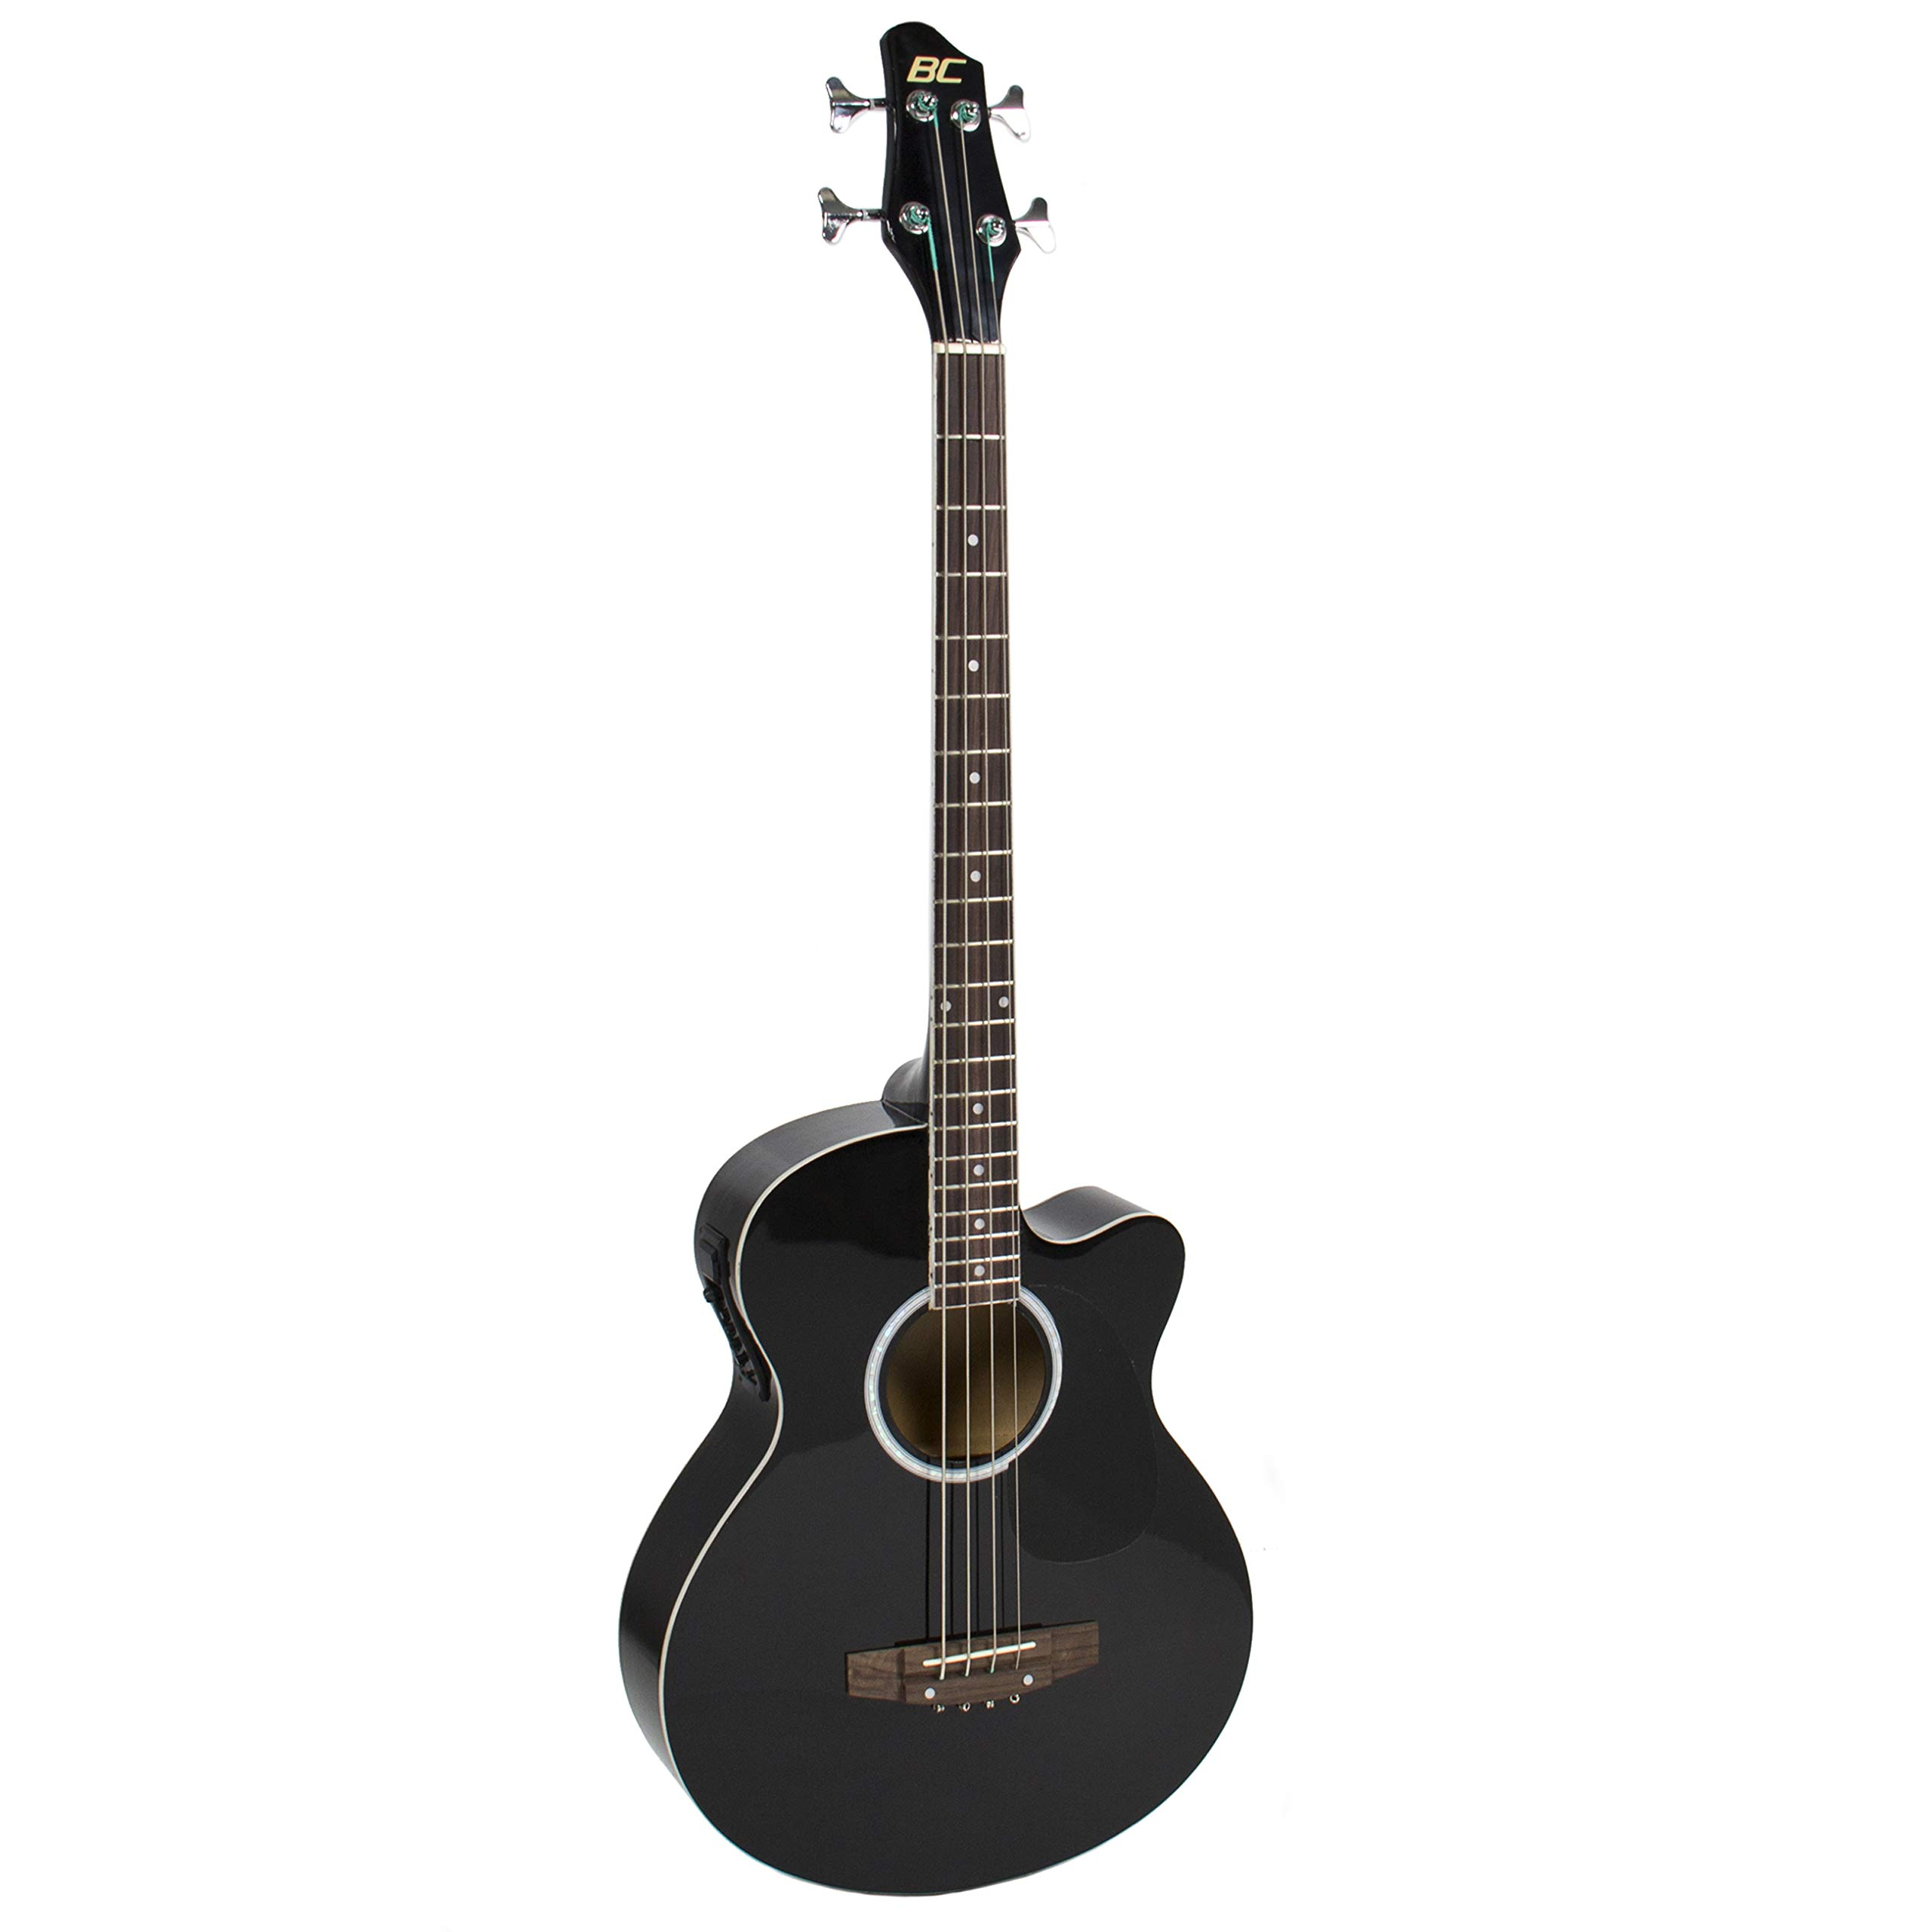 Best Choice Products 22-Fret Full Size Acoustic Electric Bass Guitar w/ 4-Band Equalizer, Adjustable Truss Rod, Solid Construction - Black